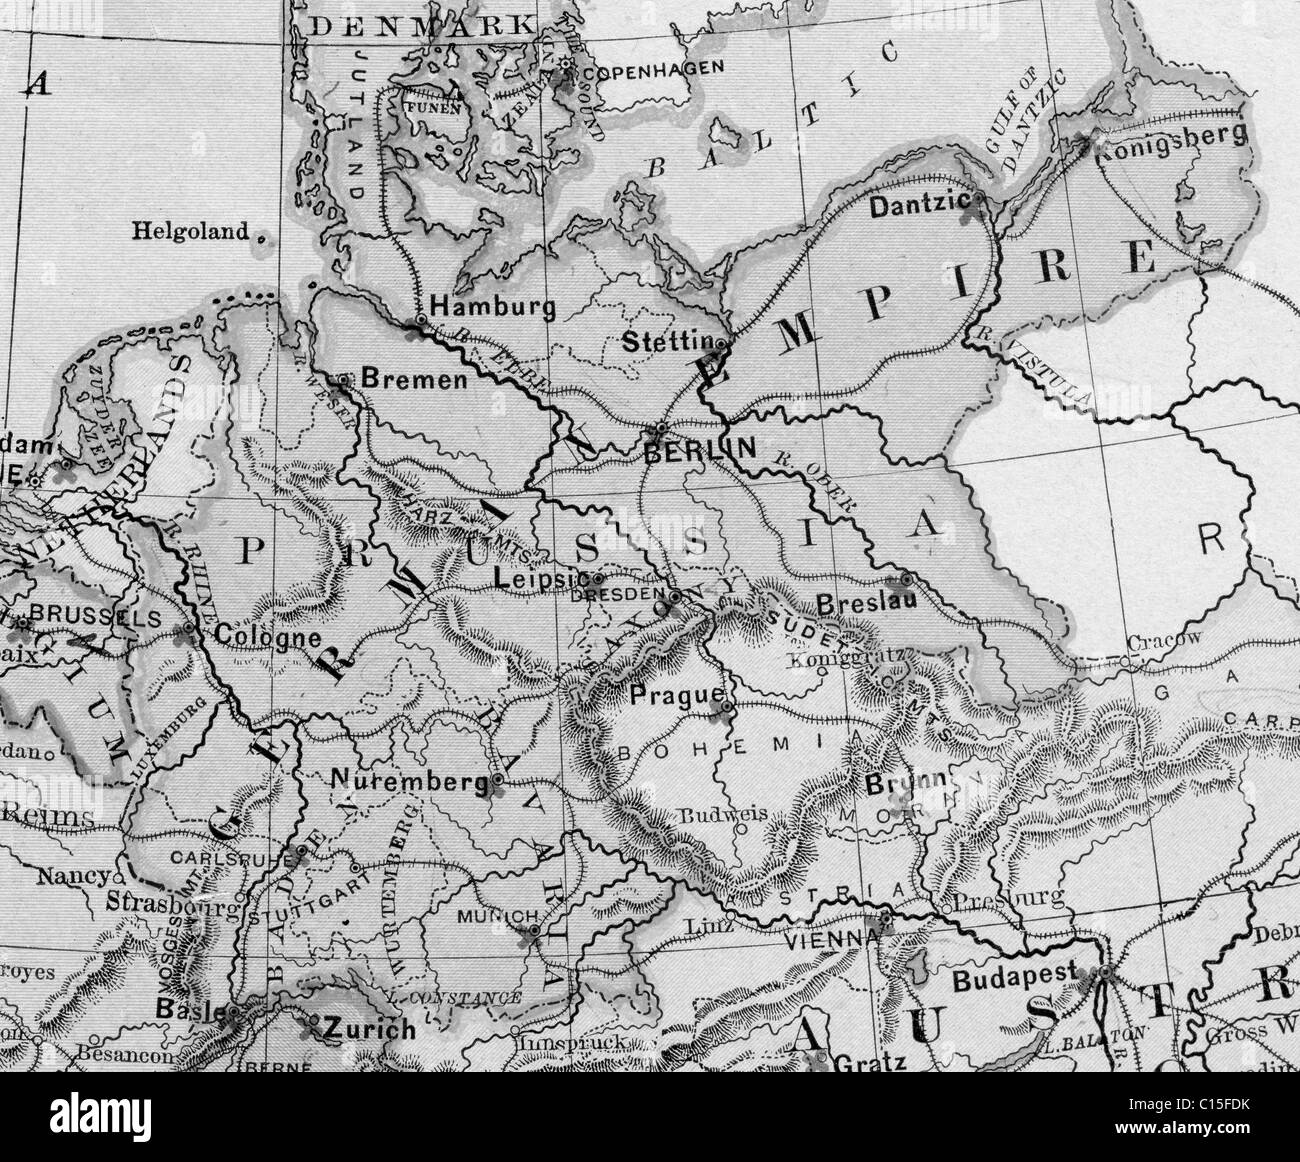 Germany German Empire Map Black And White Stock Photos Images Alamy